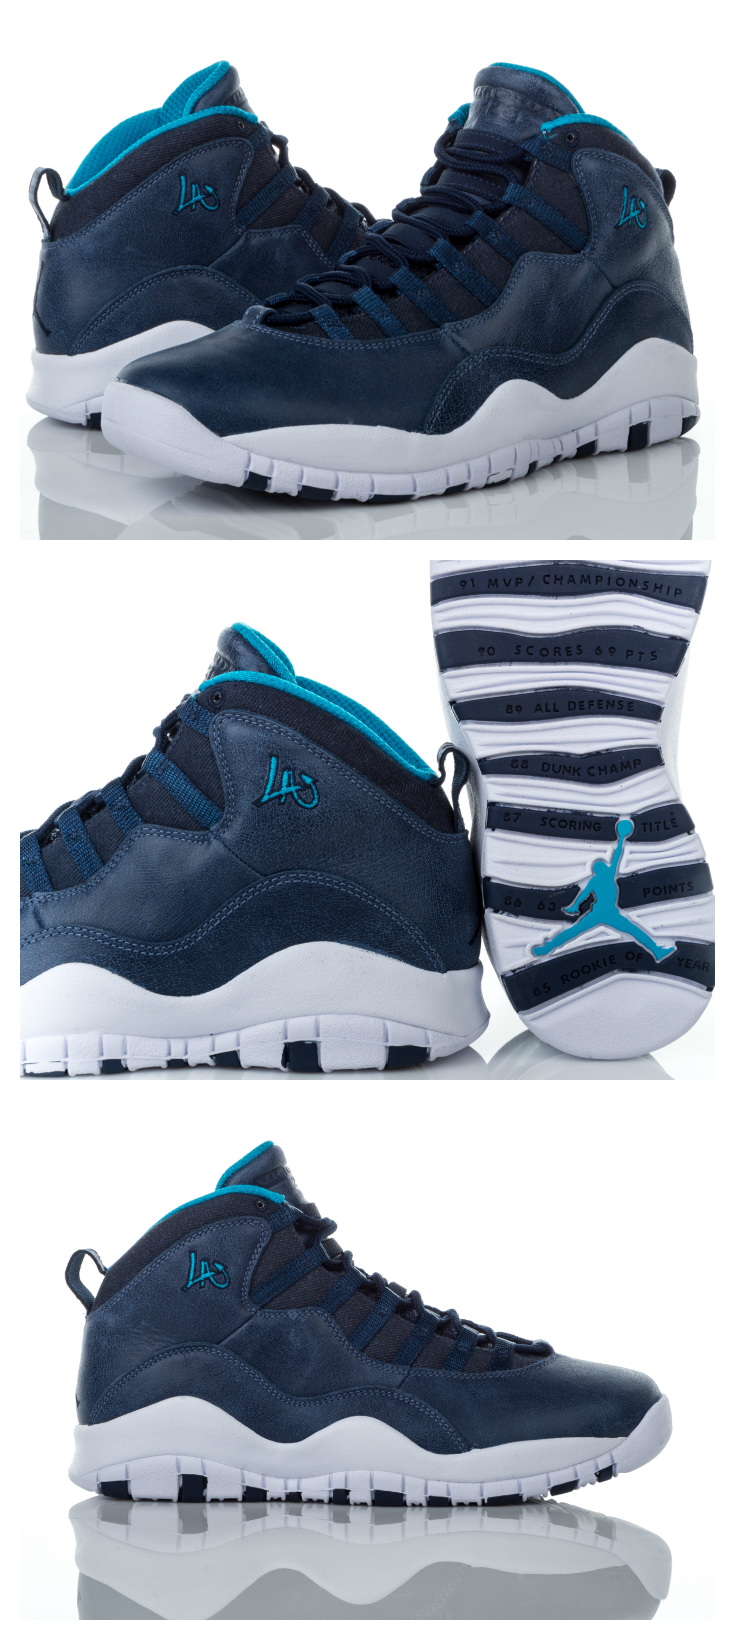 a97f1a1092a82f Look fly with this shoe inspired by the City of Angels. Get the Jordan  Retro 10  LA  now.